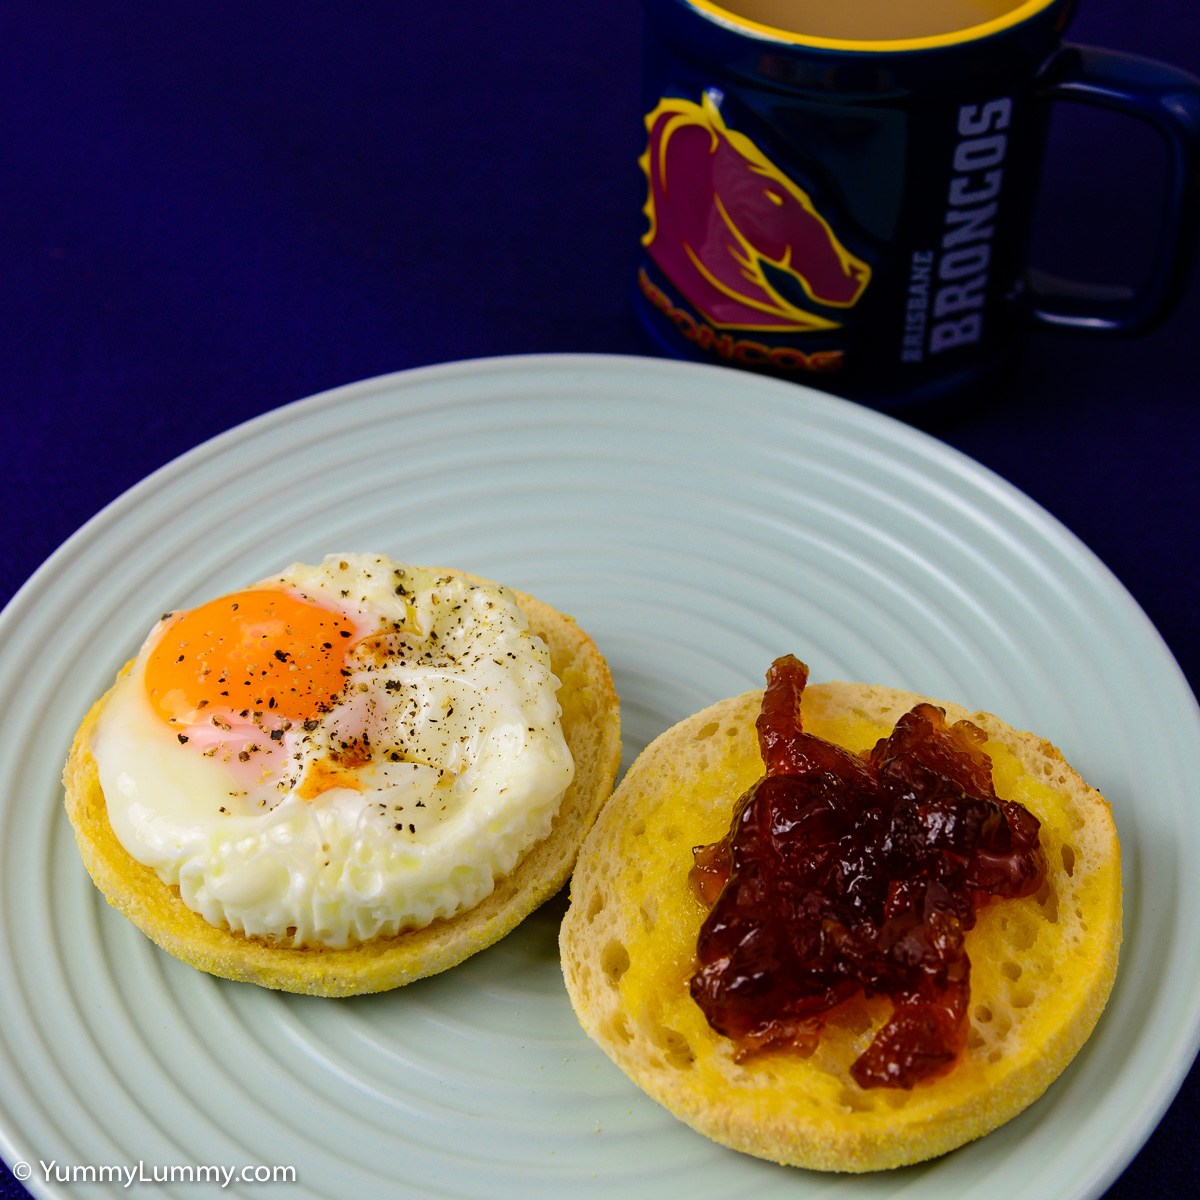 Saturday breakfast. English muffin with fried egg and English marmalade with a coffee too.